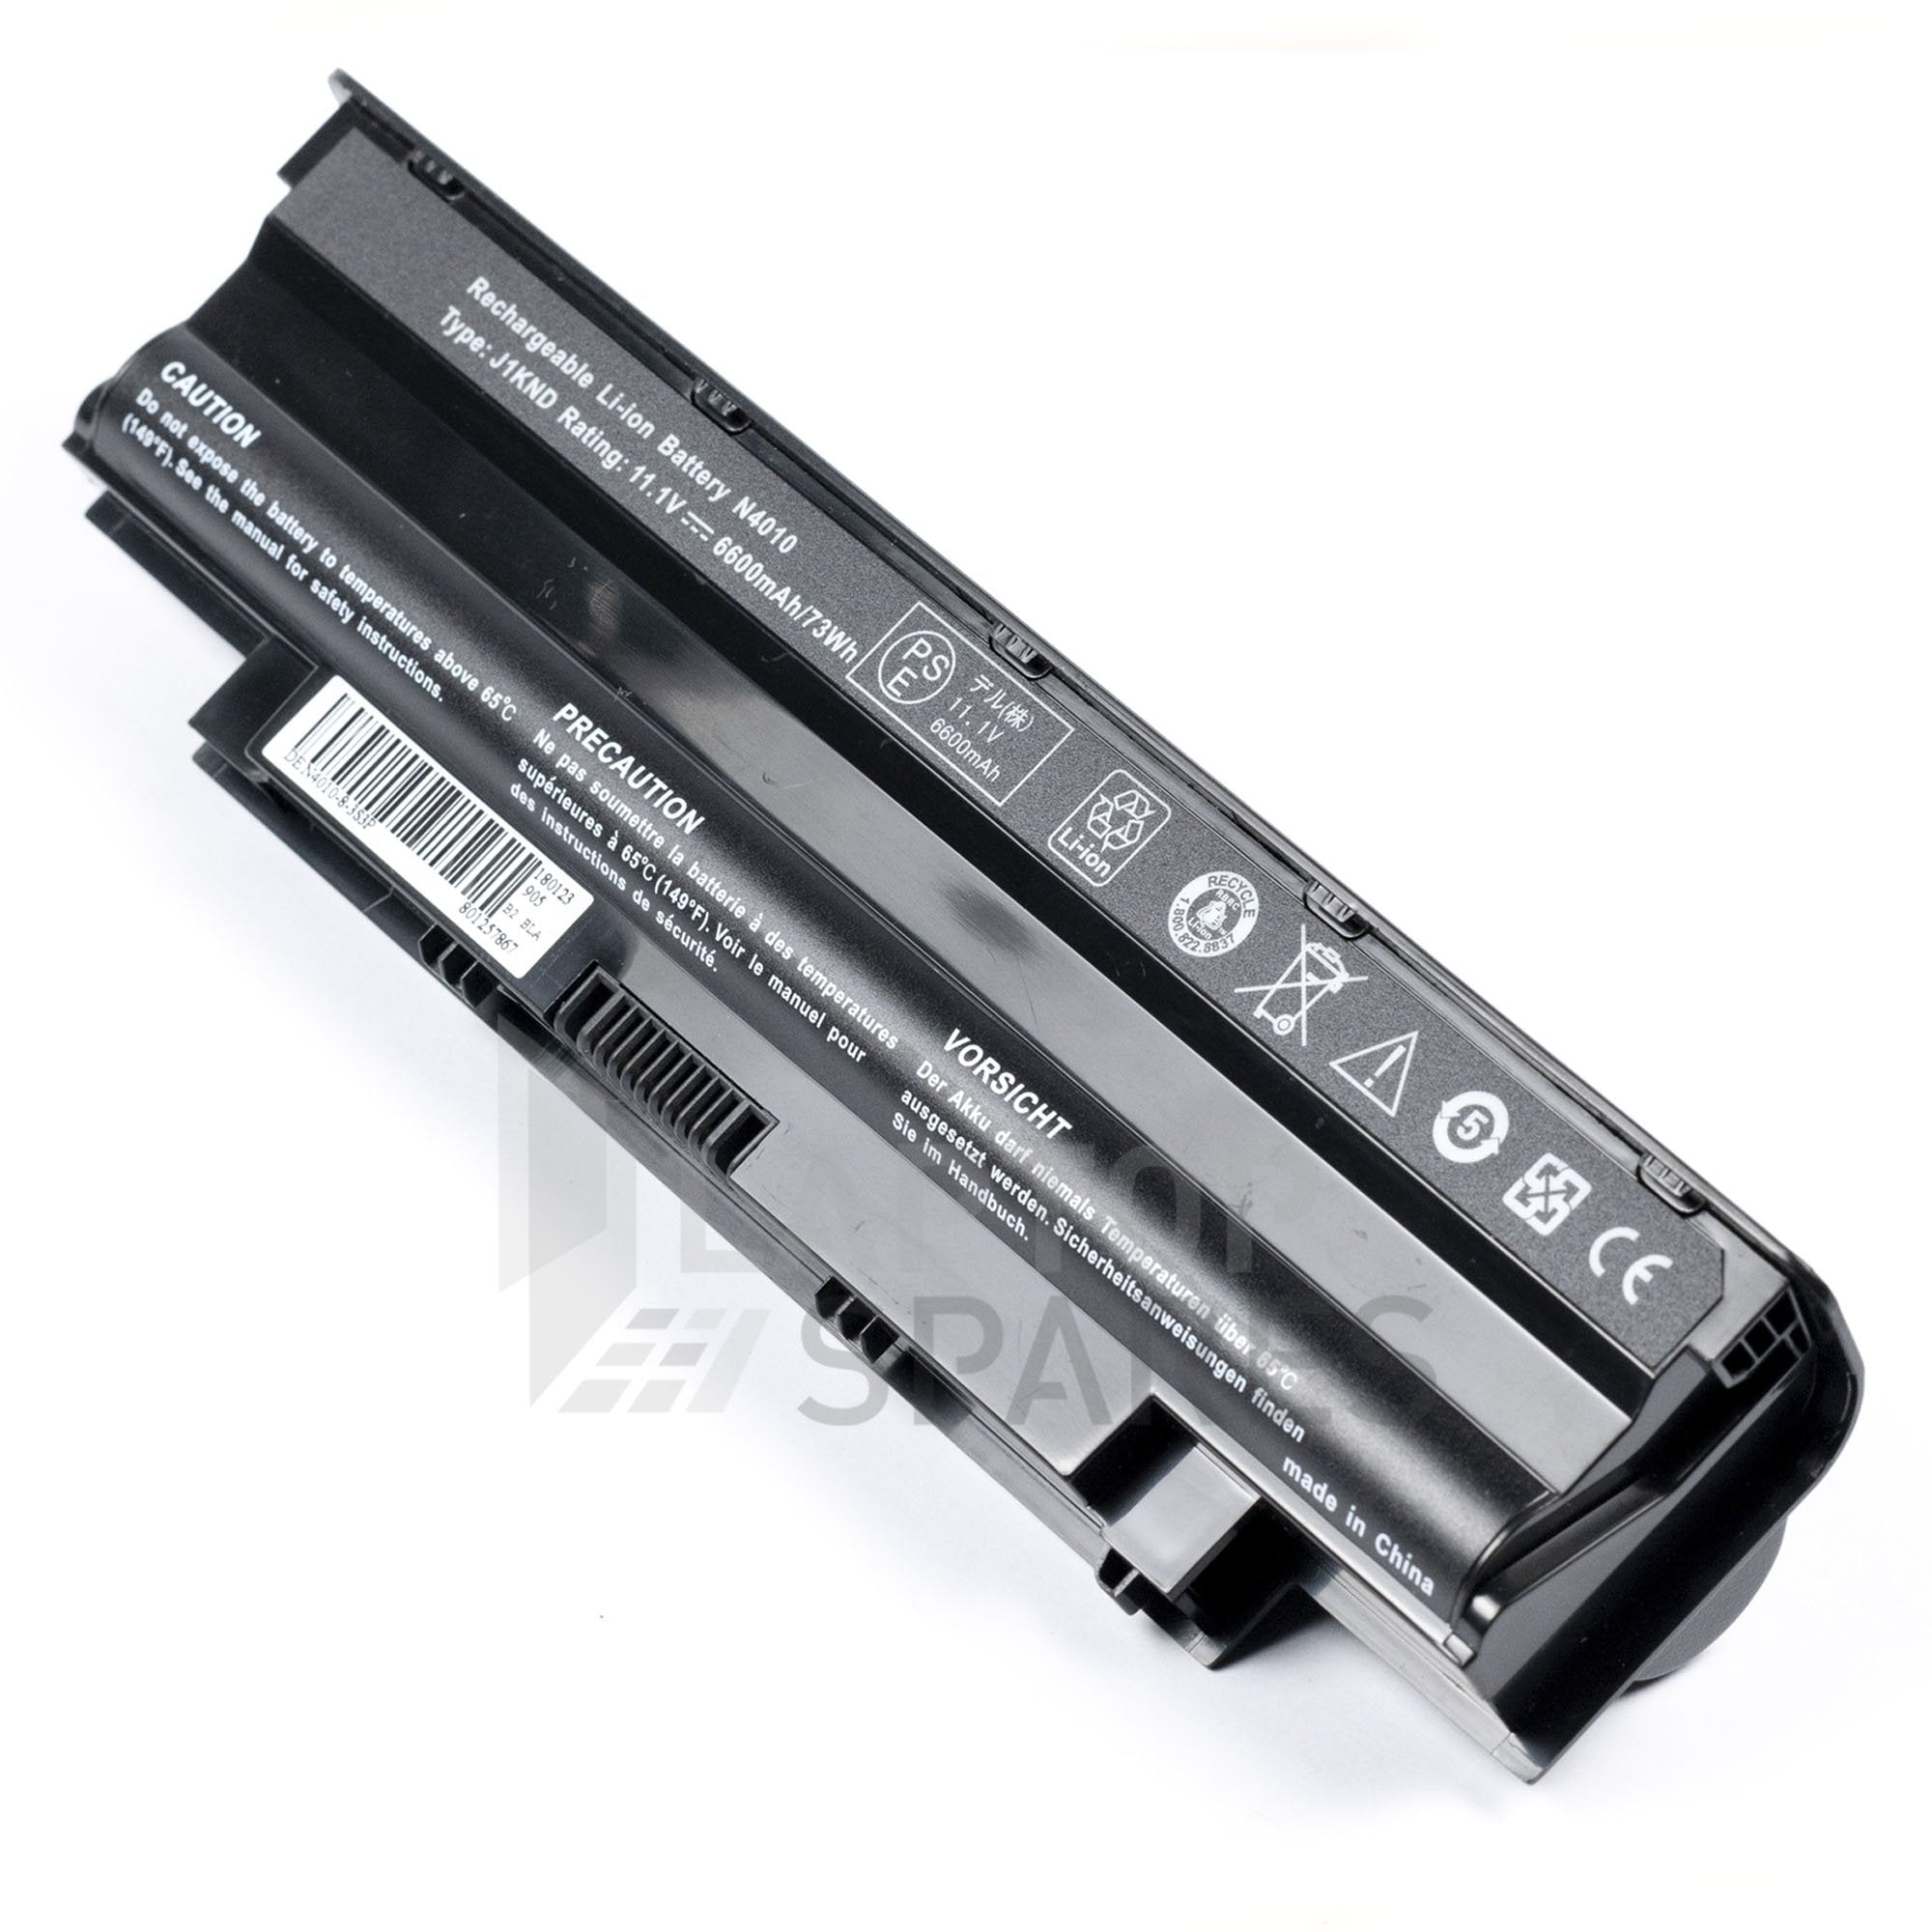 Dell Inspiron M5010D 6600mAh 9 Cell Battery